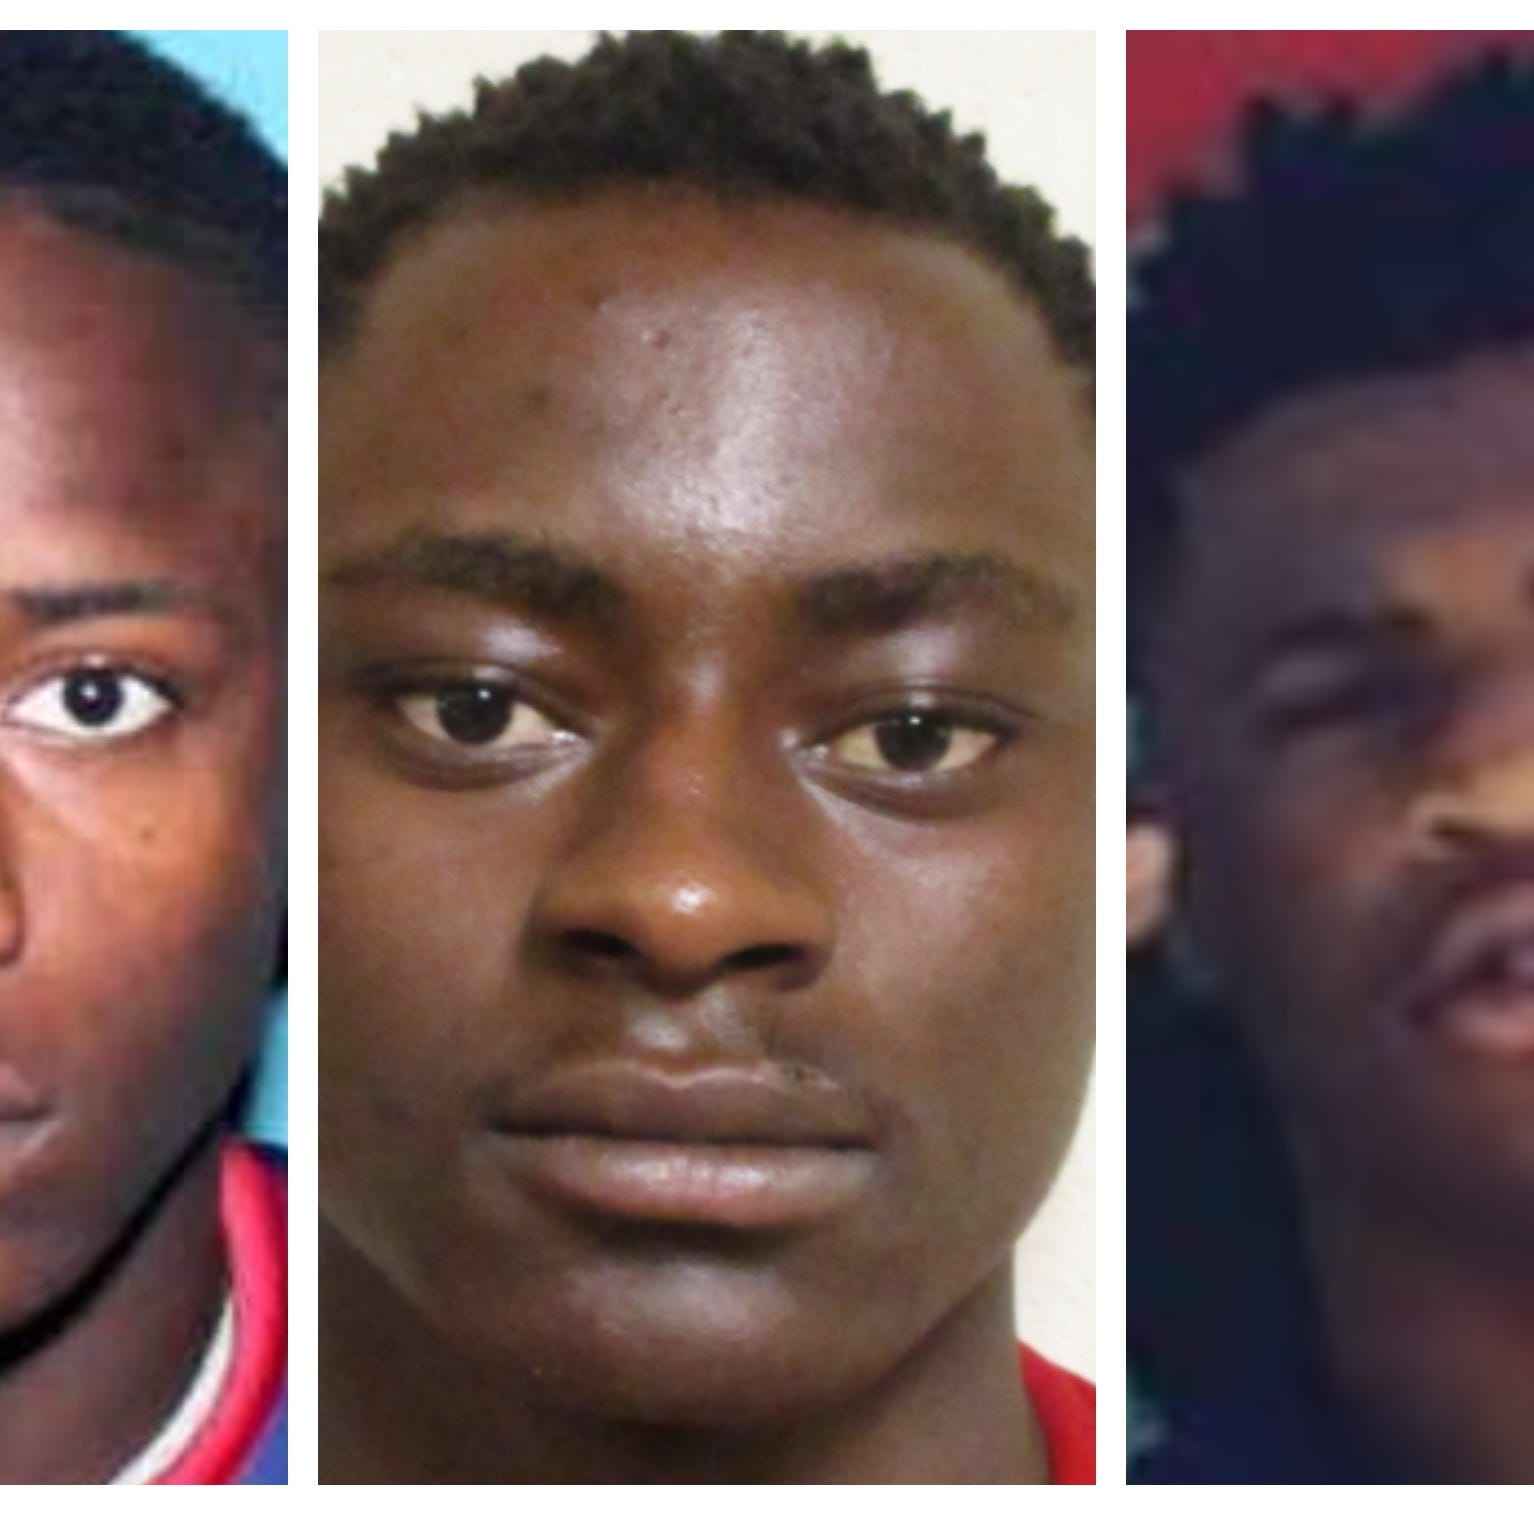 Police: 4 more suspects identified in kidnapping, beating and robbery of 15-year-old in West Des Moines drug deal set-up